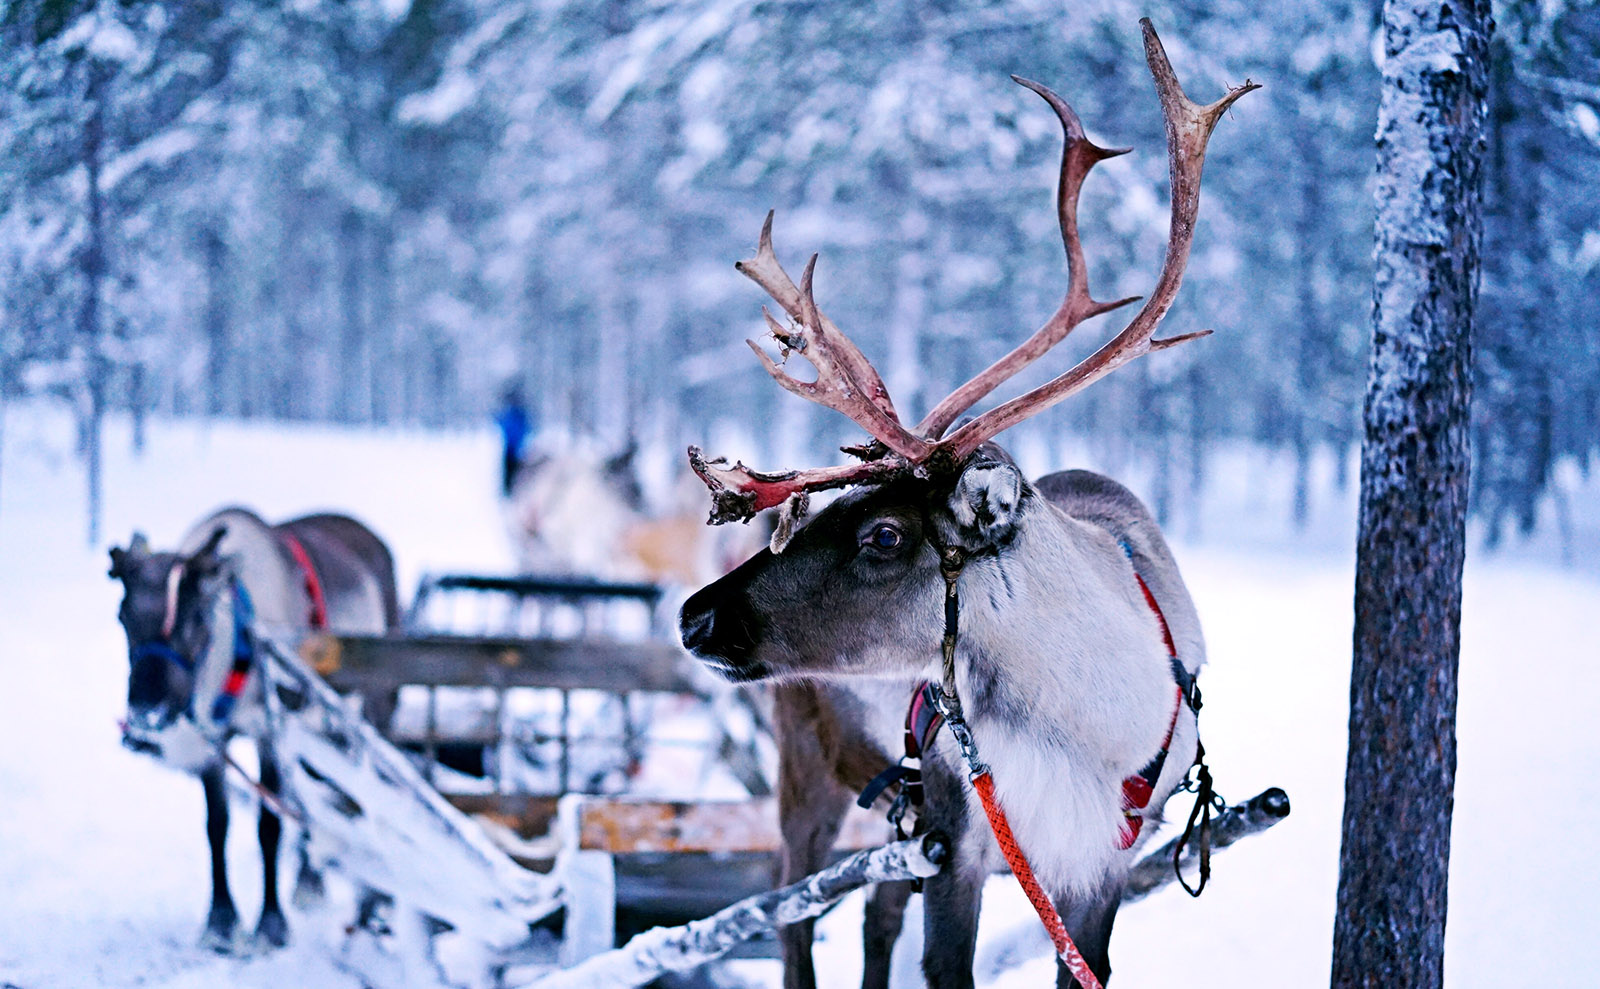 Finnish Reindeer, US-vs-UK Covers, a New Phryne Fisher & More: Endnotes 18 December